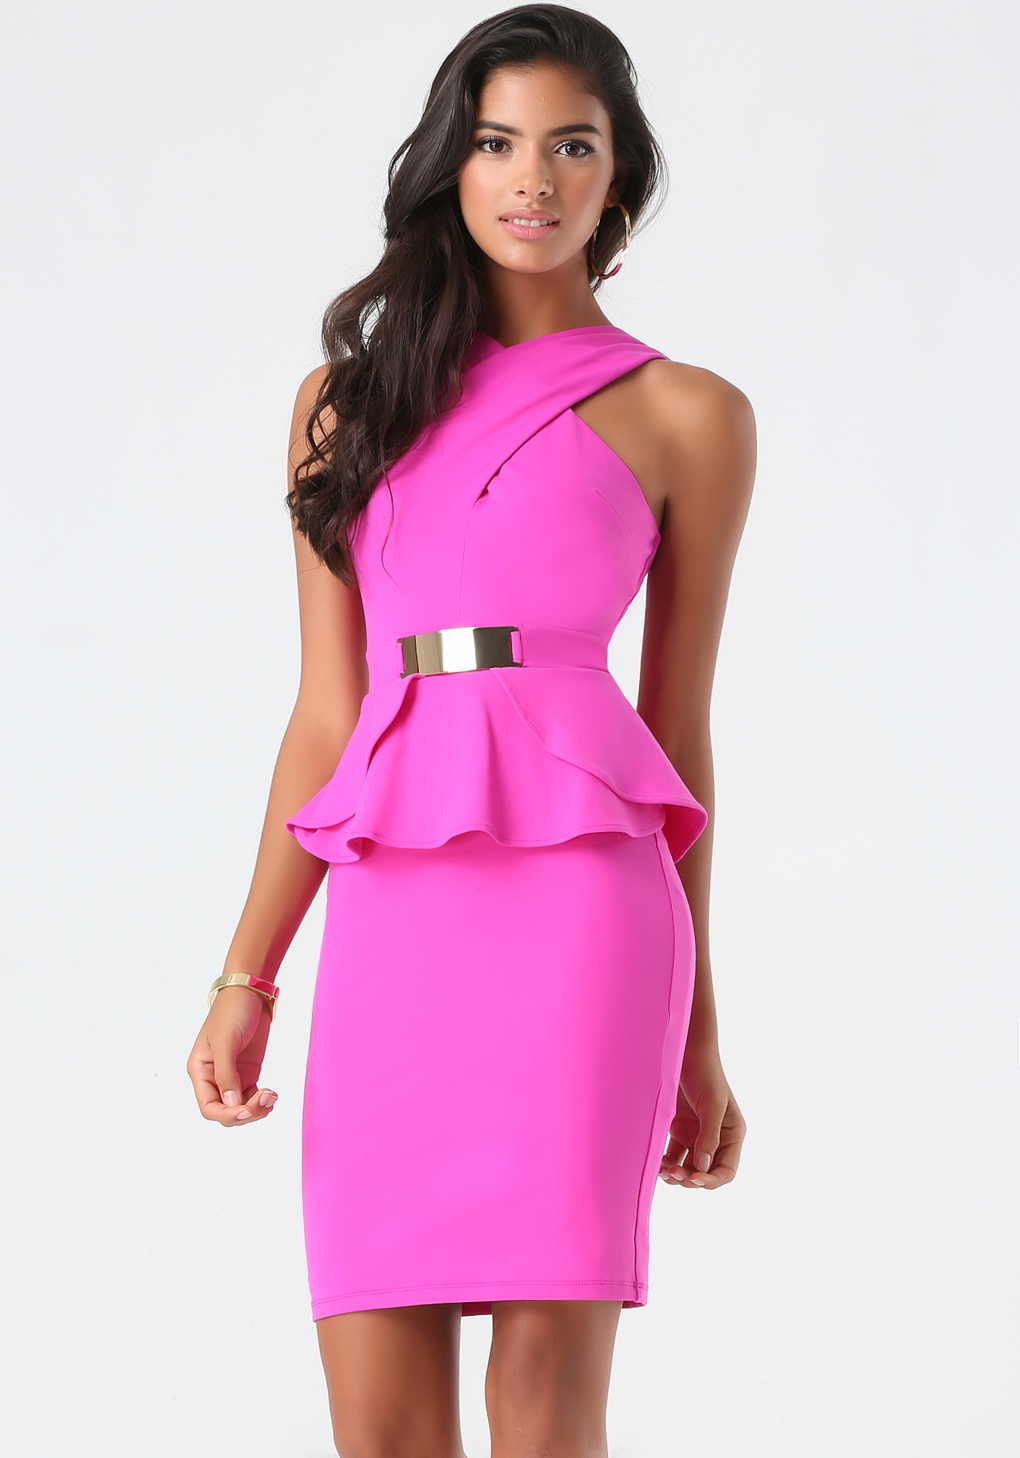 Gallery Women S Peplum Dresses